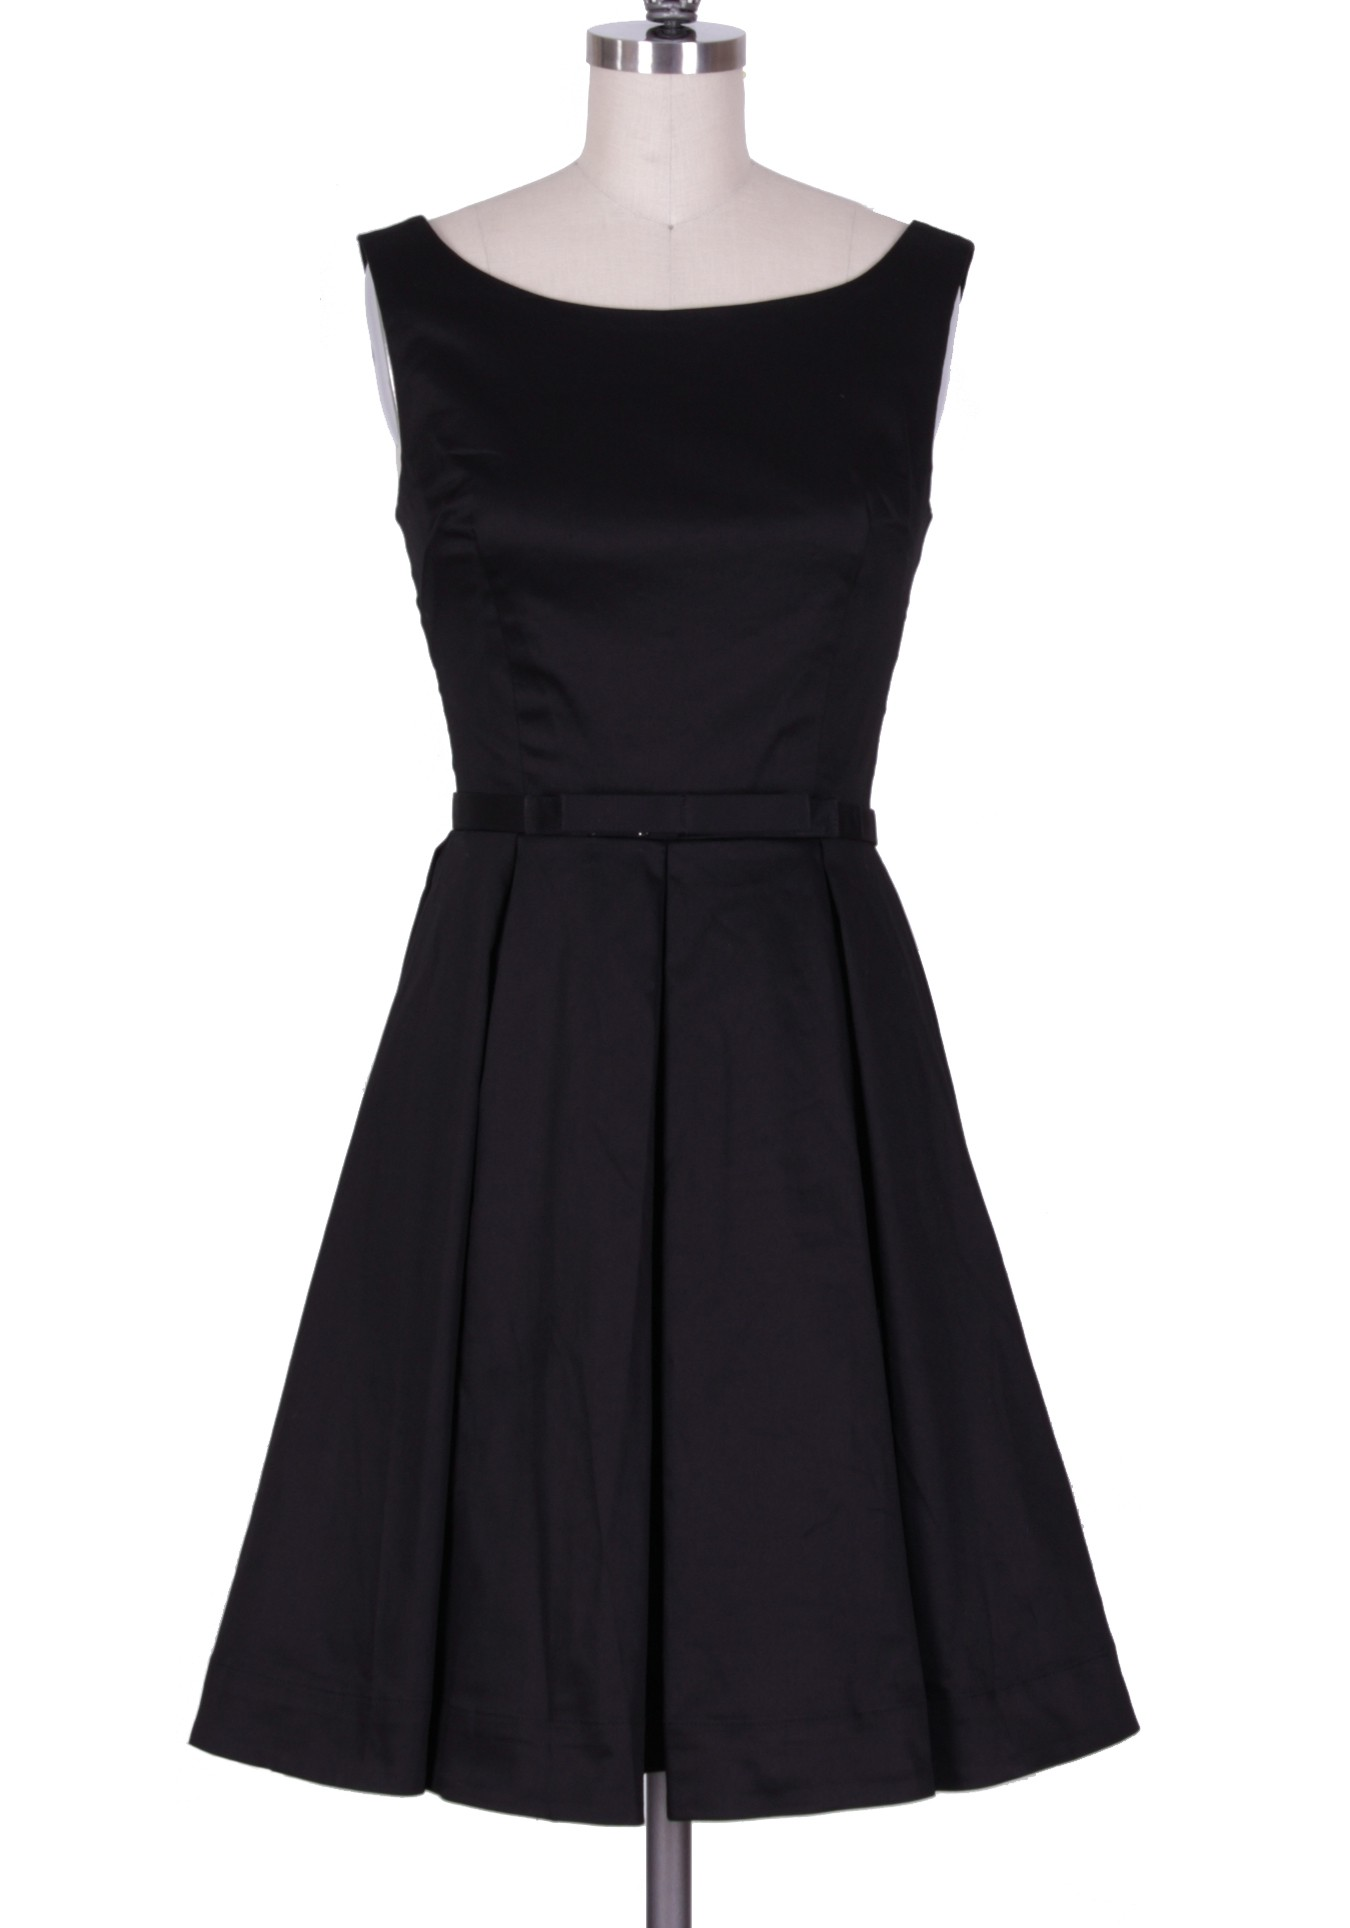 Take It To Audrey Hepburn Style! Vintage Dress | ReoRia